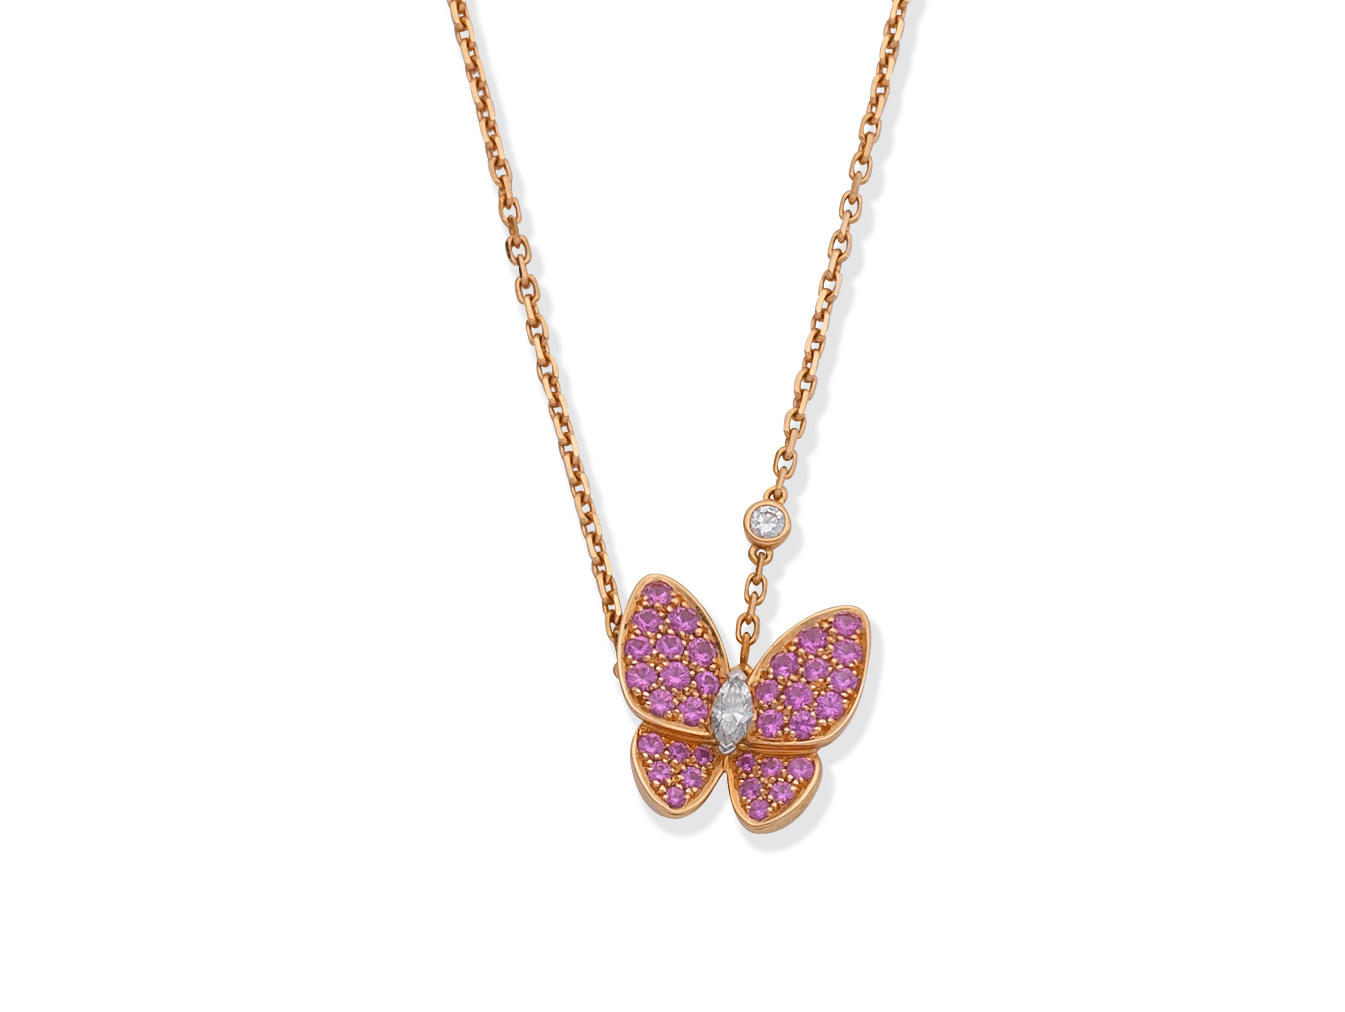 VAN CLEEF & ARPELS: PINK SAPPHIRE AND DIAMOND 'TWO BUTTERFLY' PENDANT NECKLACE